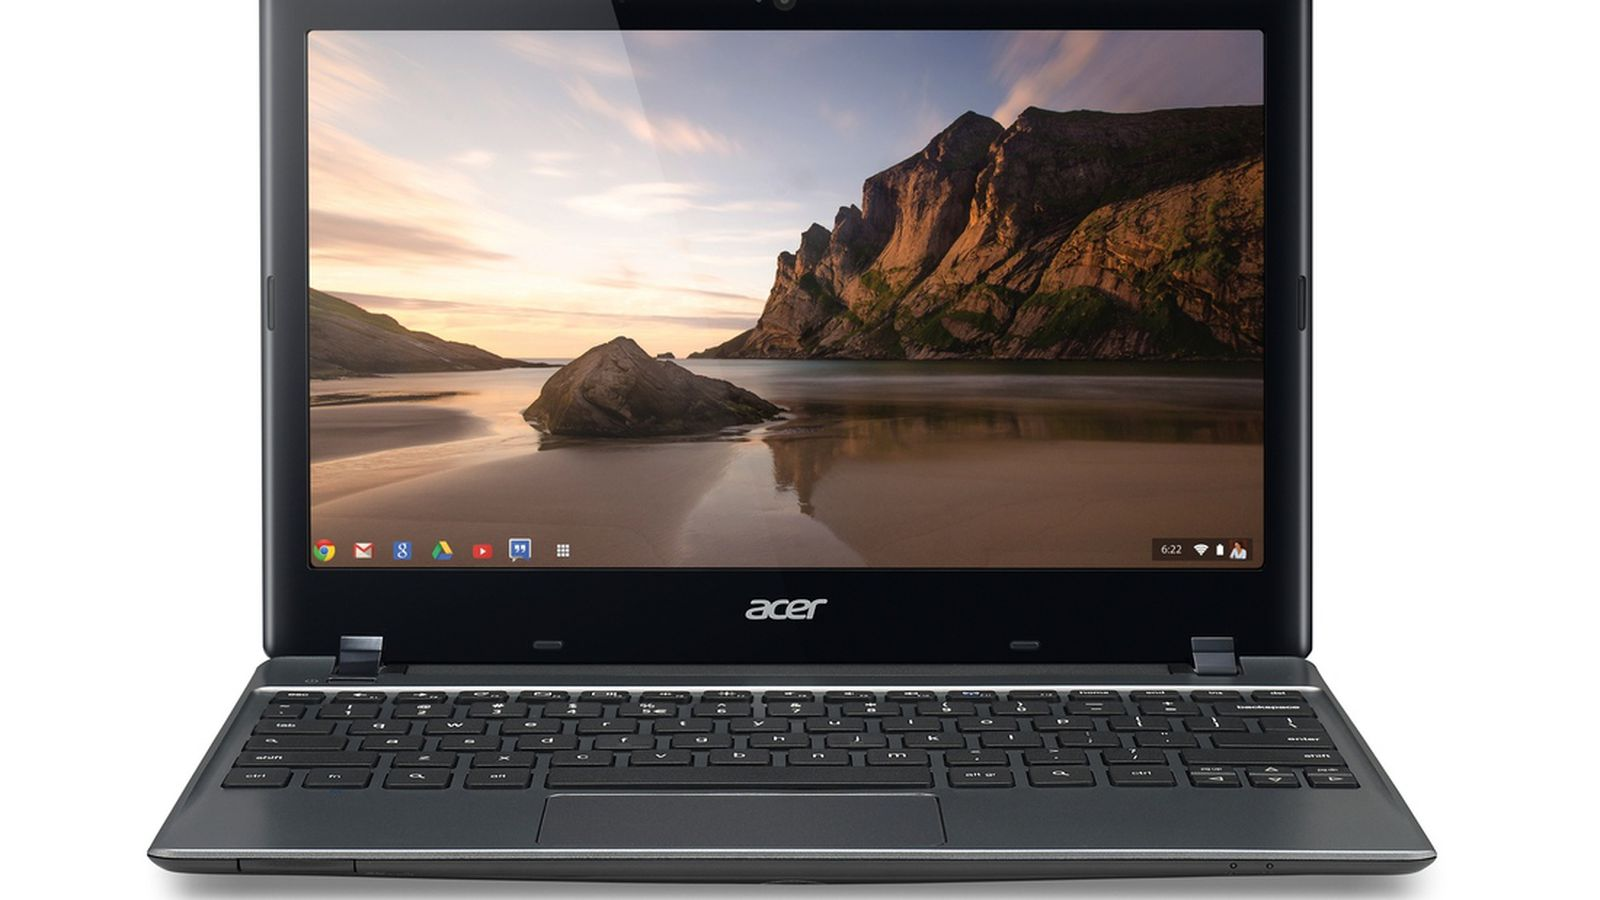 Acer C7 Chromebook Images The Verge